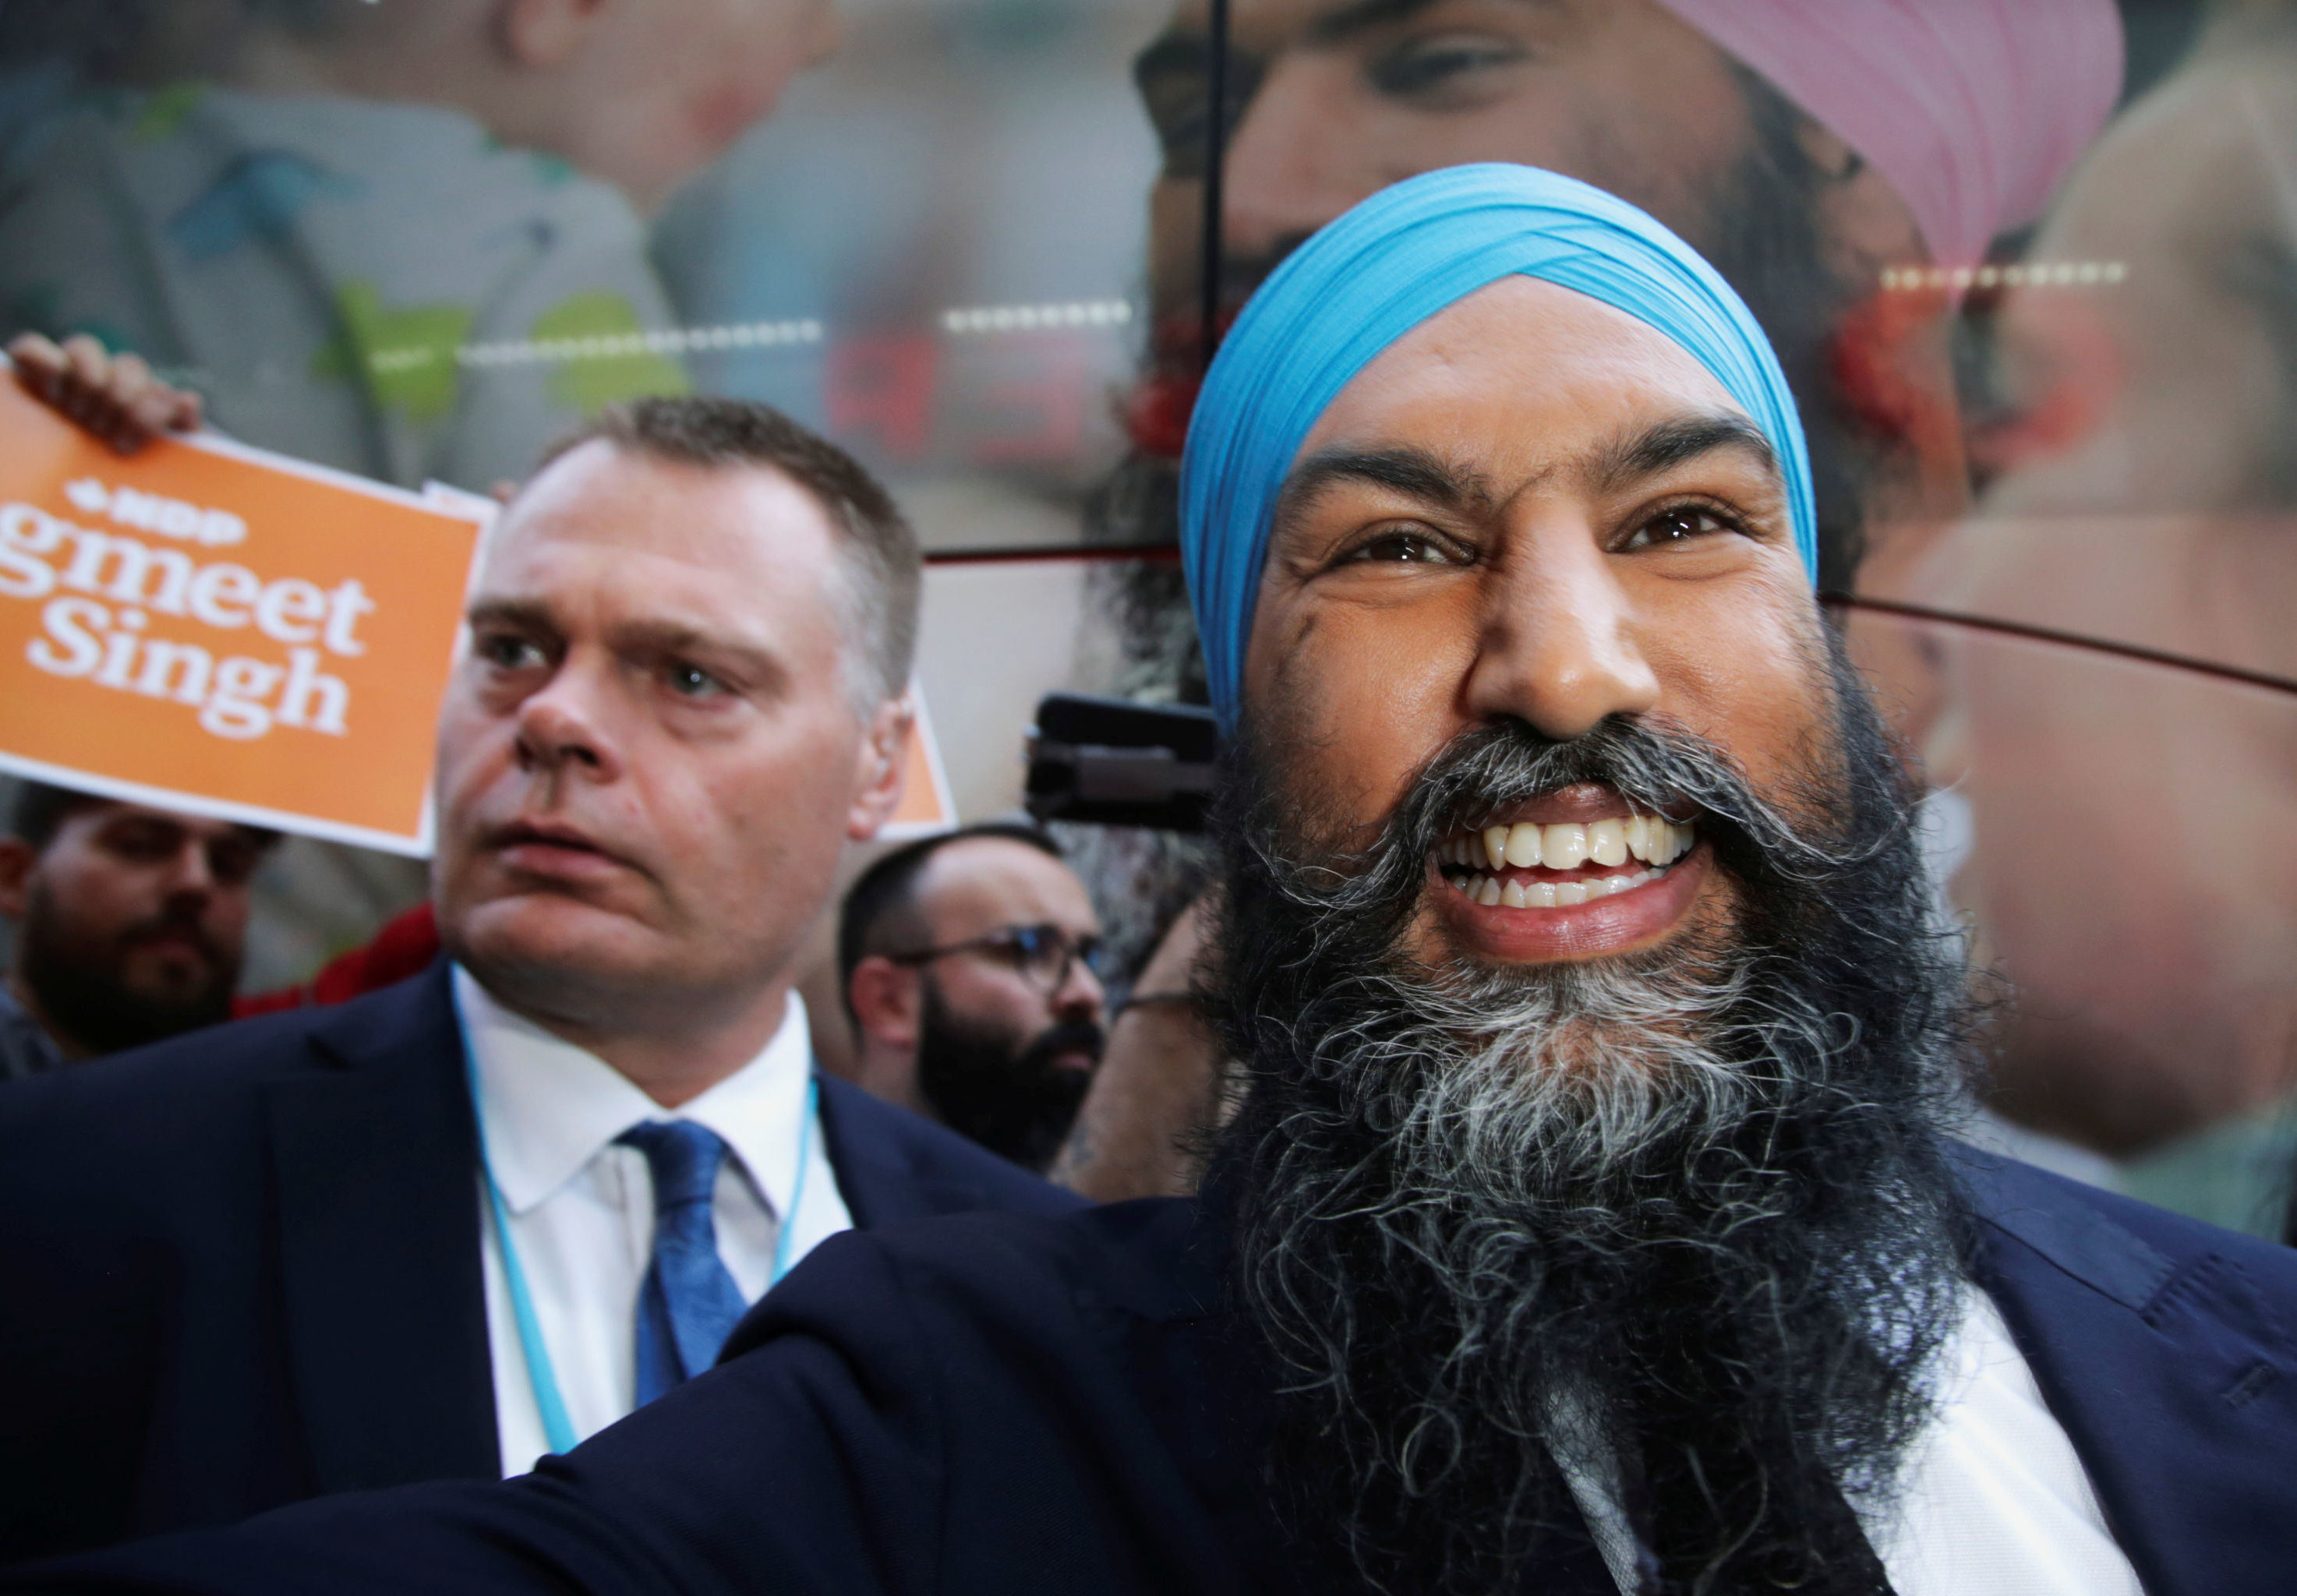 New Democratic Party (NDP) leader Jagmeet Singh arrives for a debate hosted by Macleans news magazine, which will not be attended by Prime Minister Justin Trudeau, in Toronto, Ontario, Canada September 12, 2019